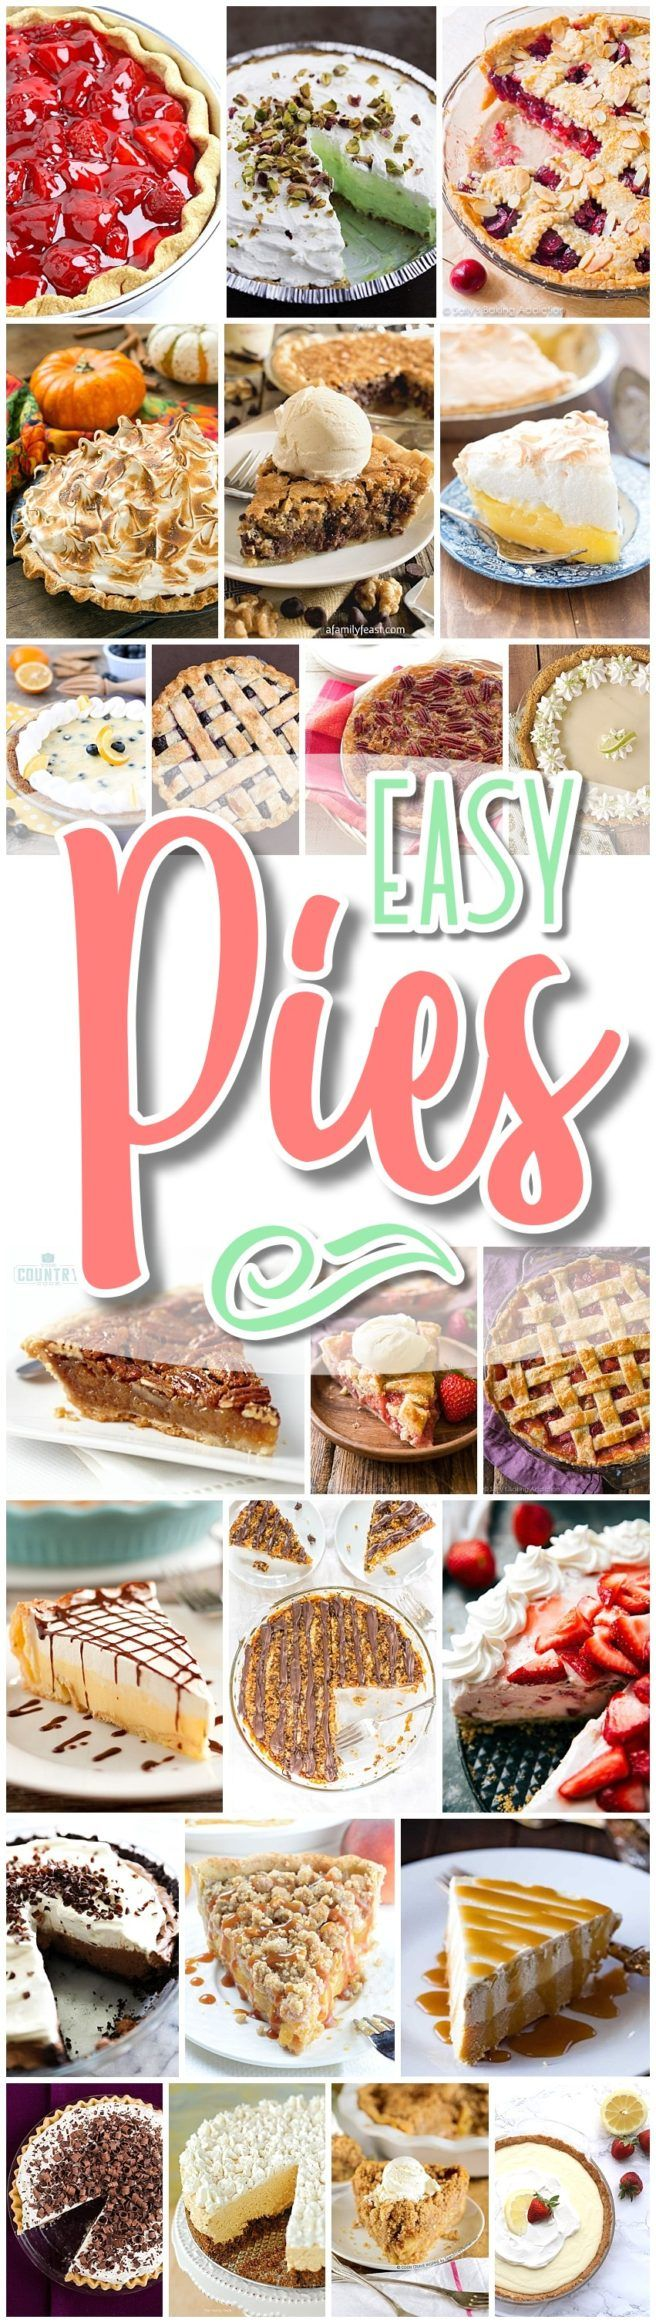 The BEST EASY Pie Recipes – Holiday Desserts No-Bake plus Bake Musts Favorite EASY Pies Recipes -